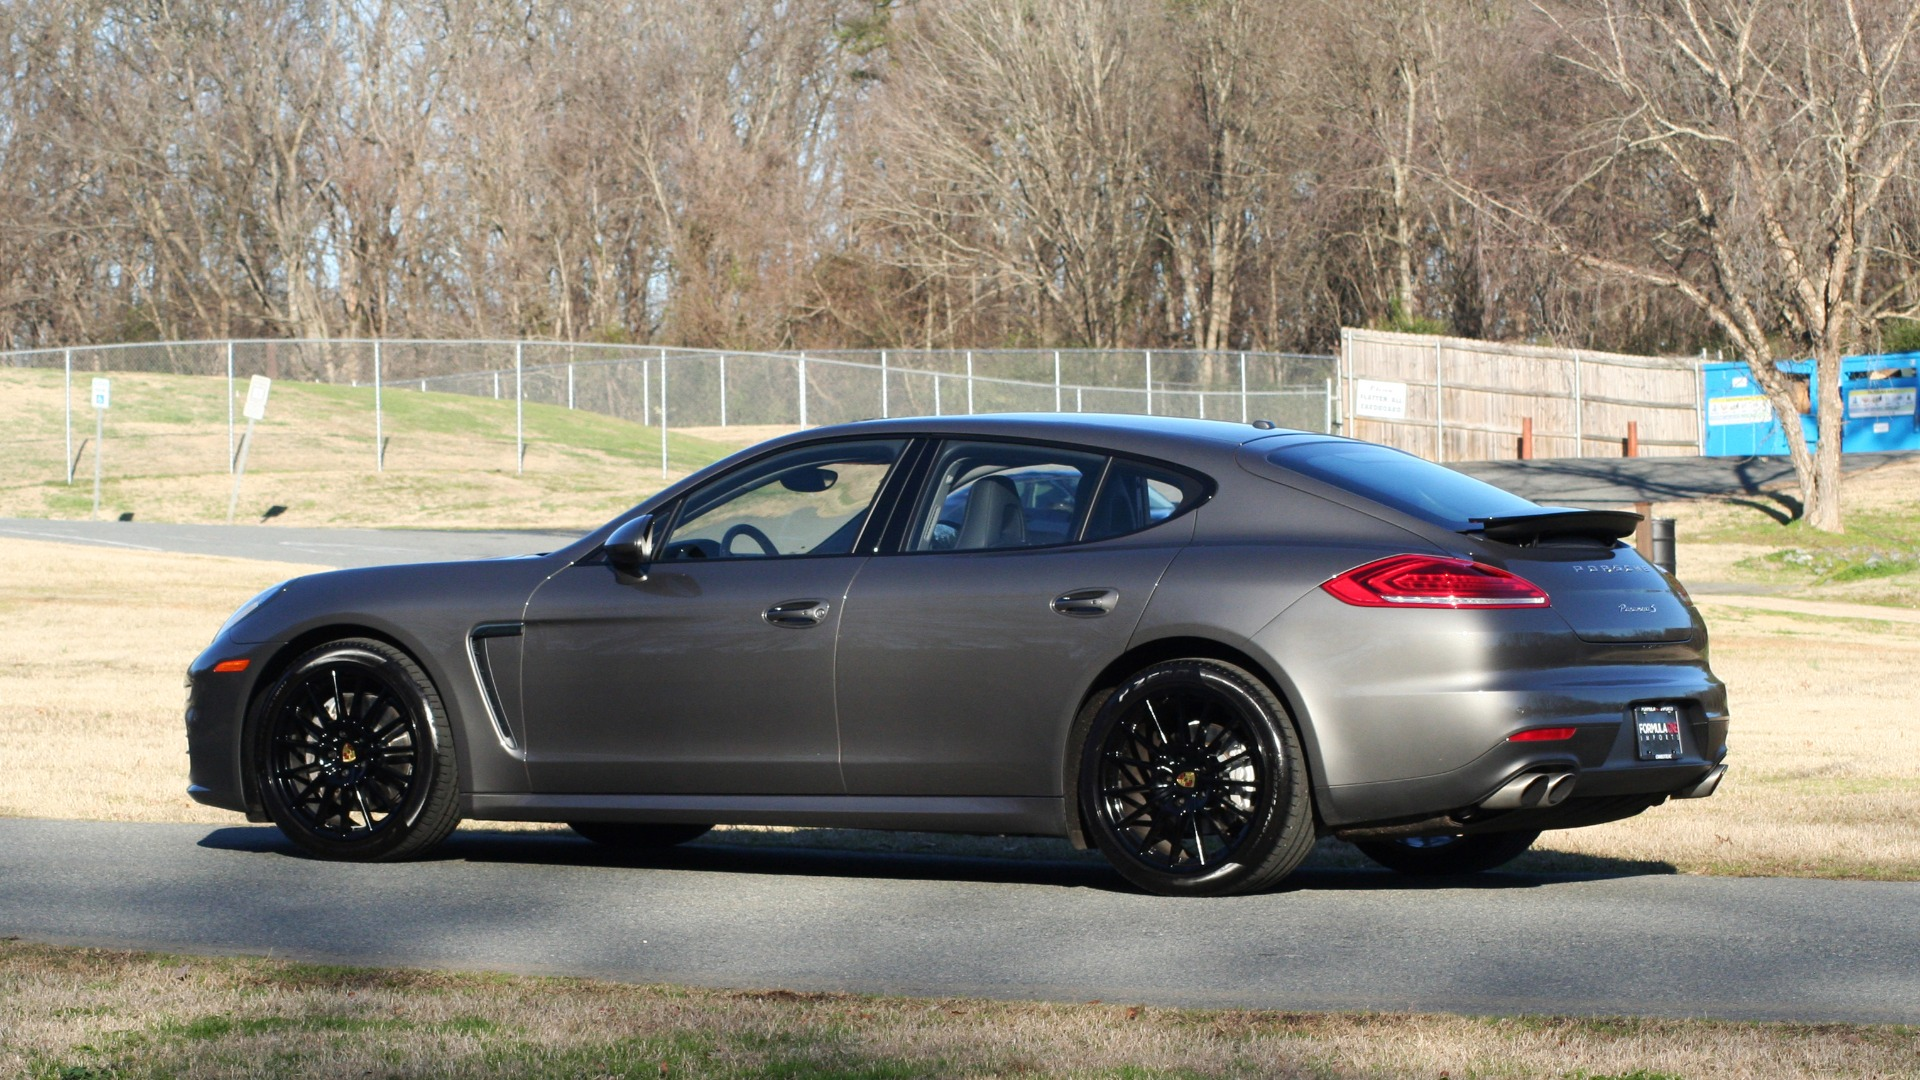 Used 2016 Porsche PANAMERA S / TURBO V6 / PDK / NAV / BOSE / SNRF / LDW / REARVIEW for sale Sold at Formula Imports in Charlotte NC 28227 6